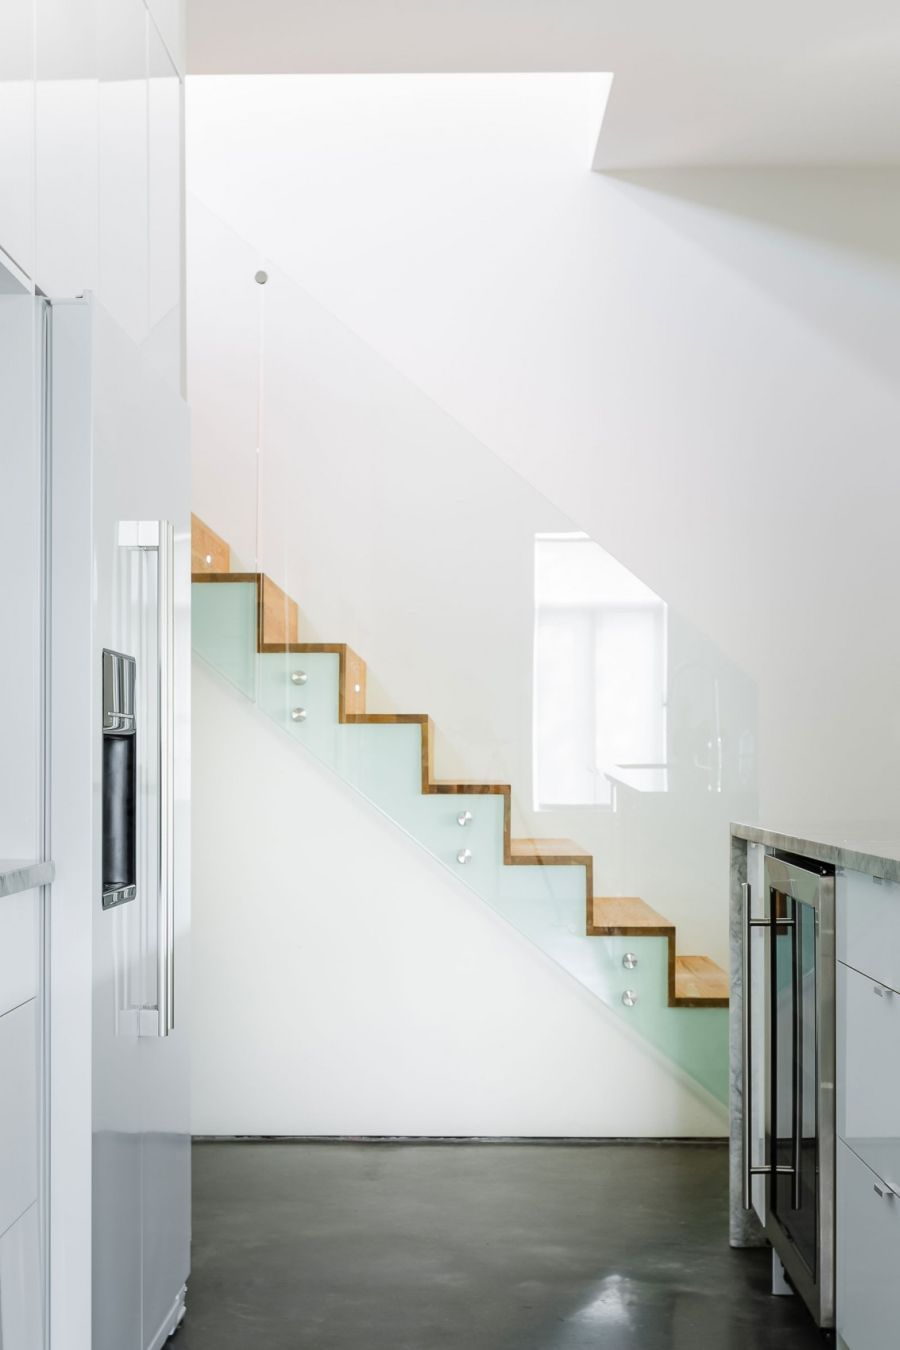 Wooden staircase leading to the second floor